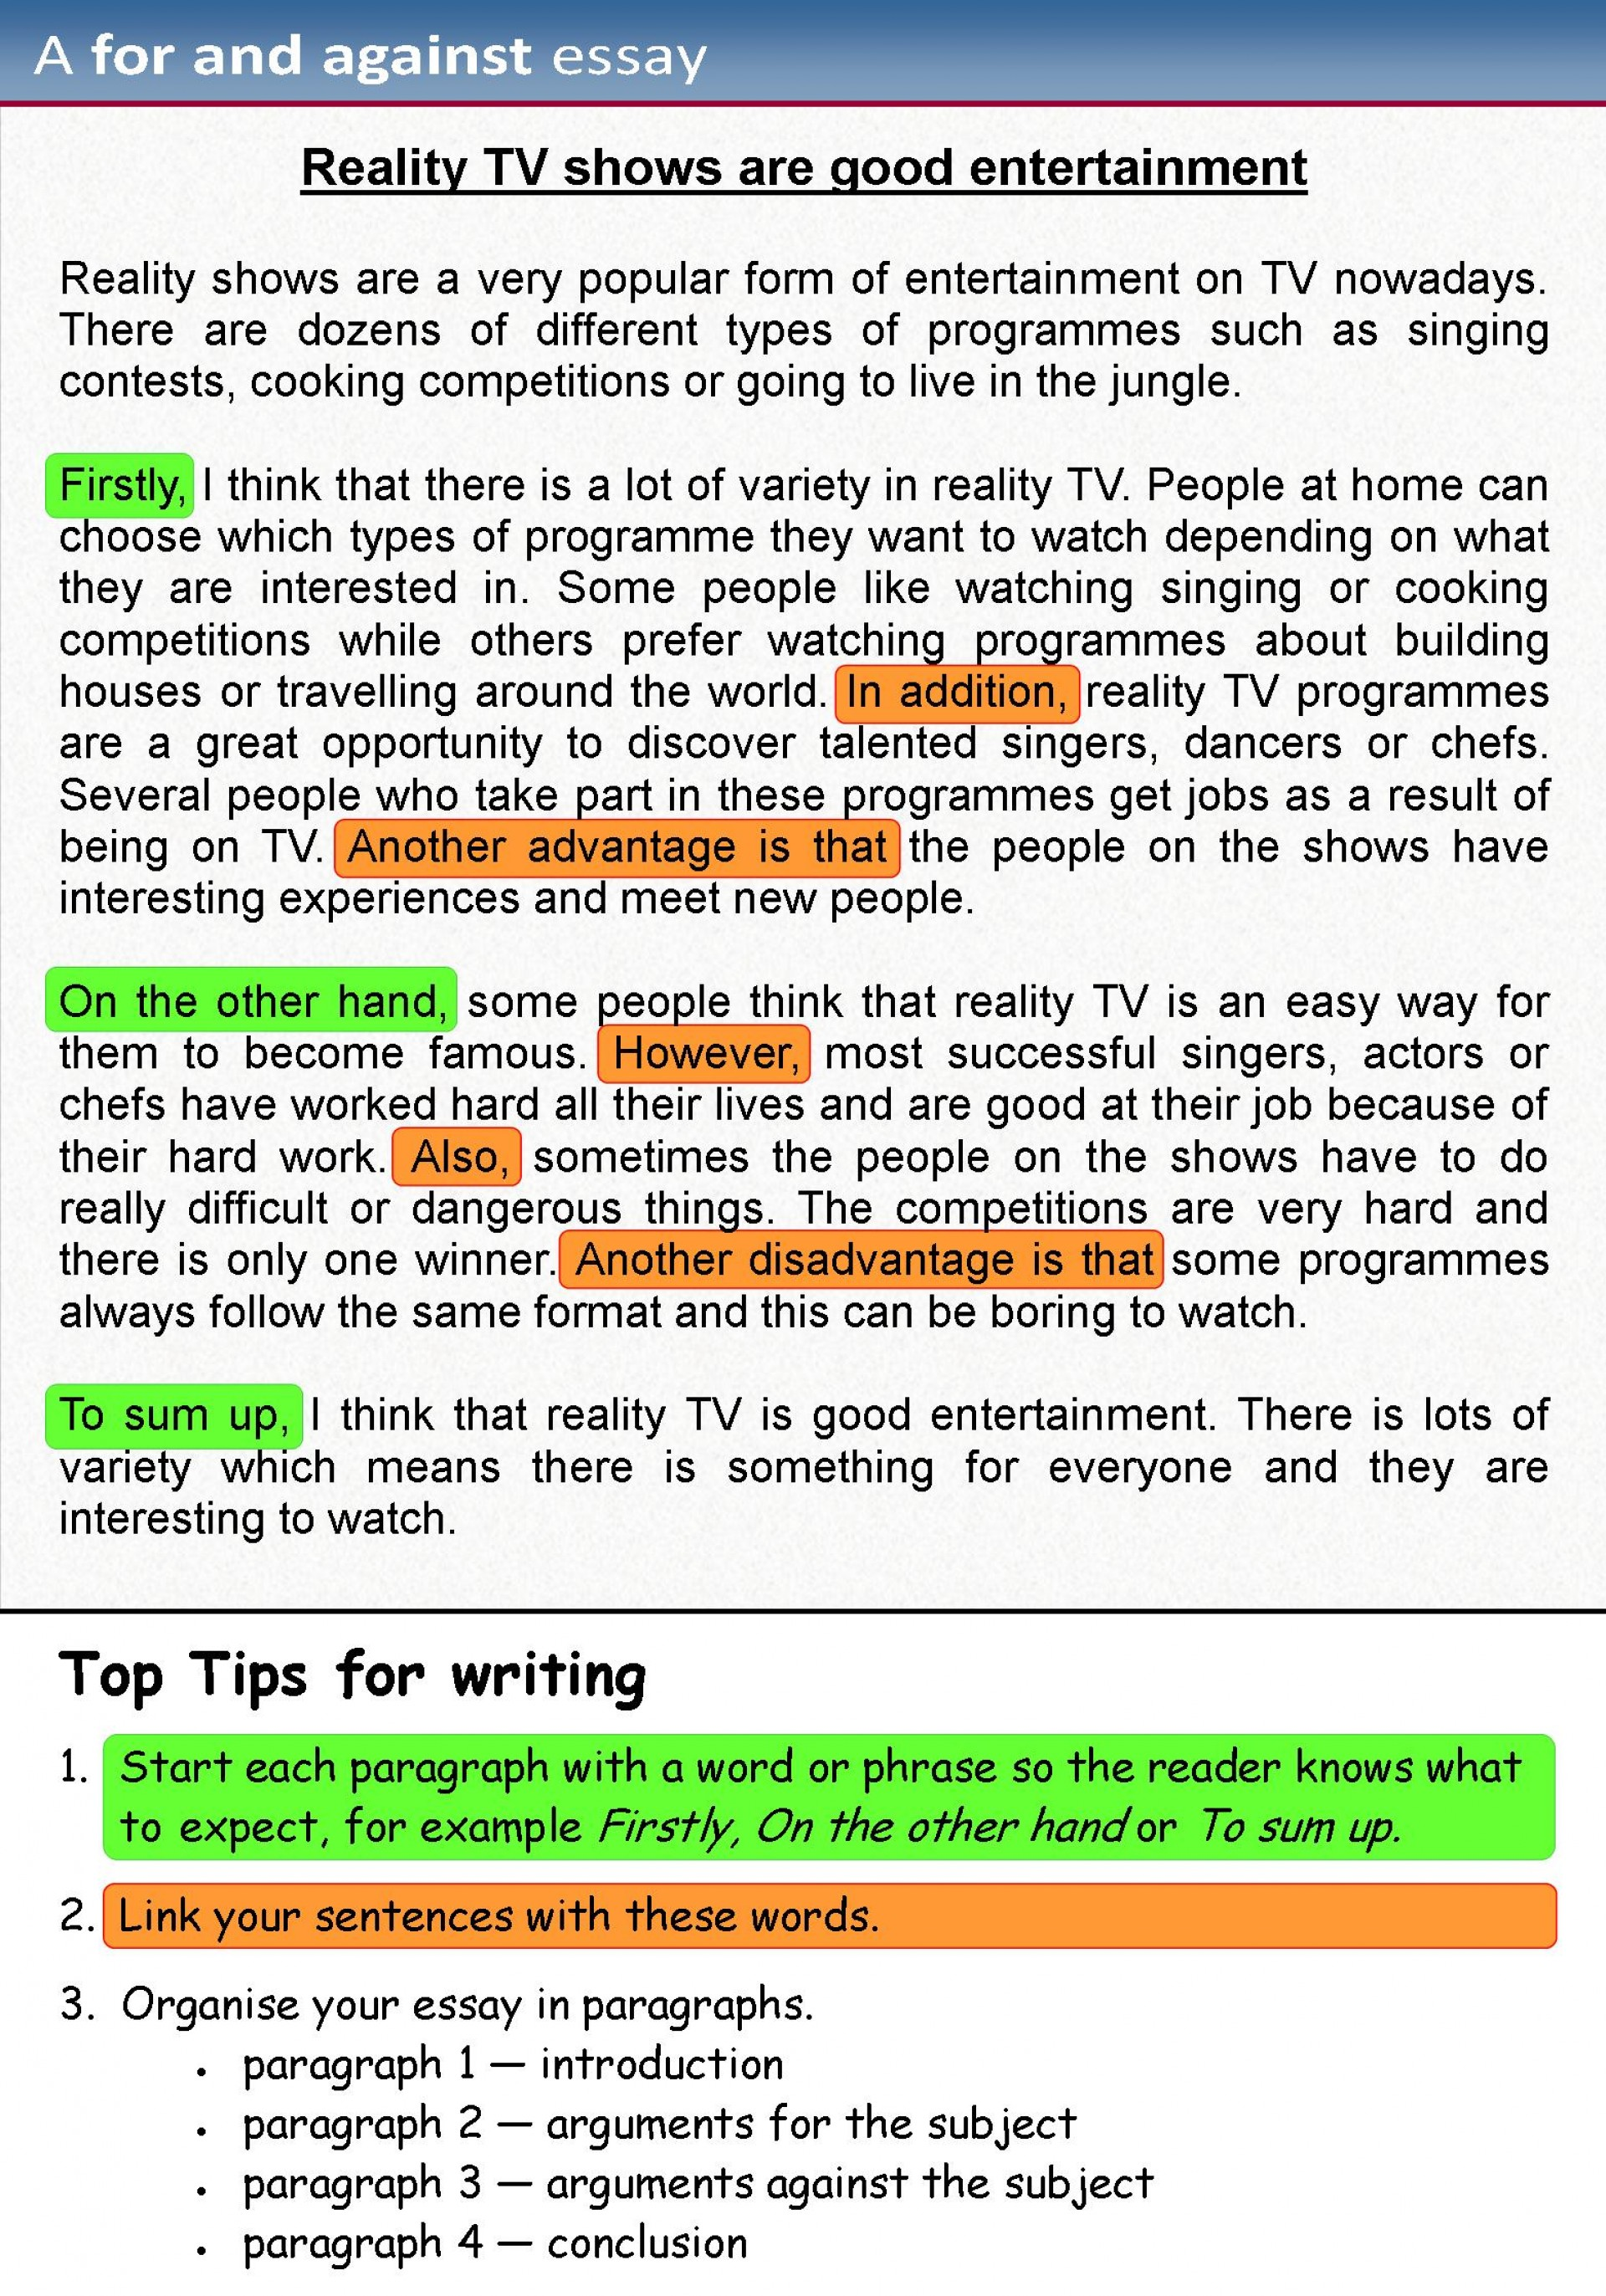 016 For Against Essay 1 Funny Essays Stupendous Examples Short 1920